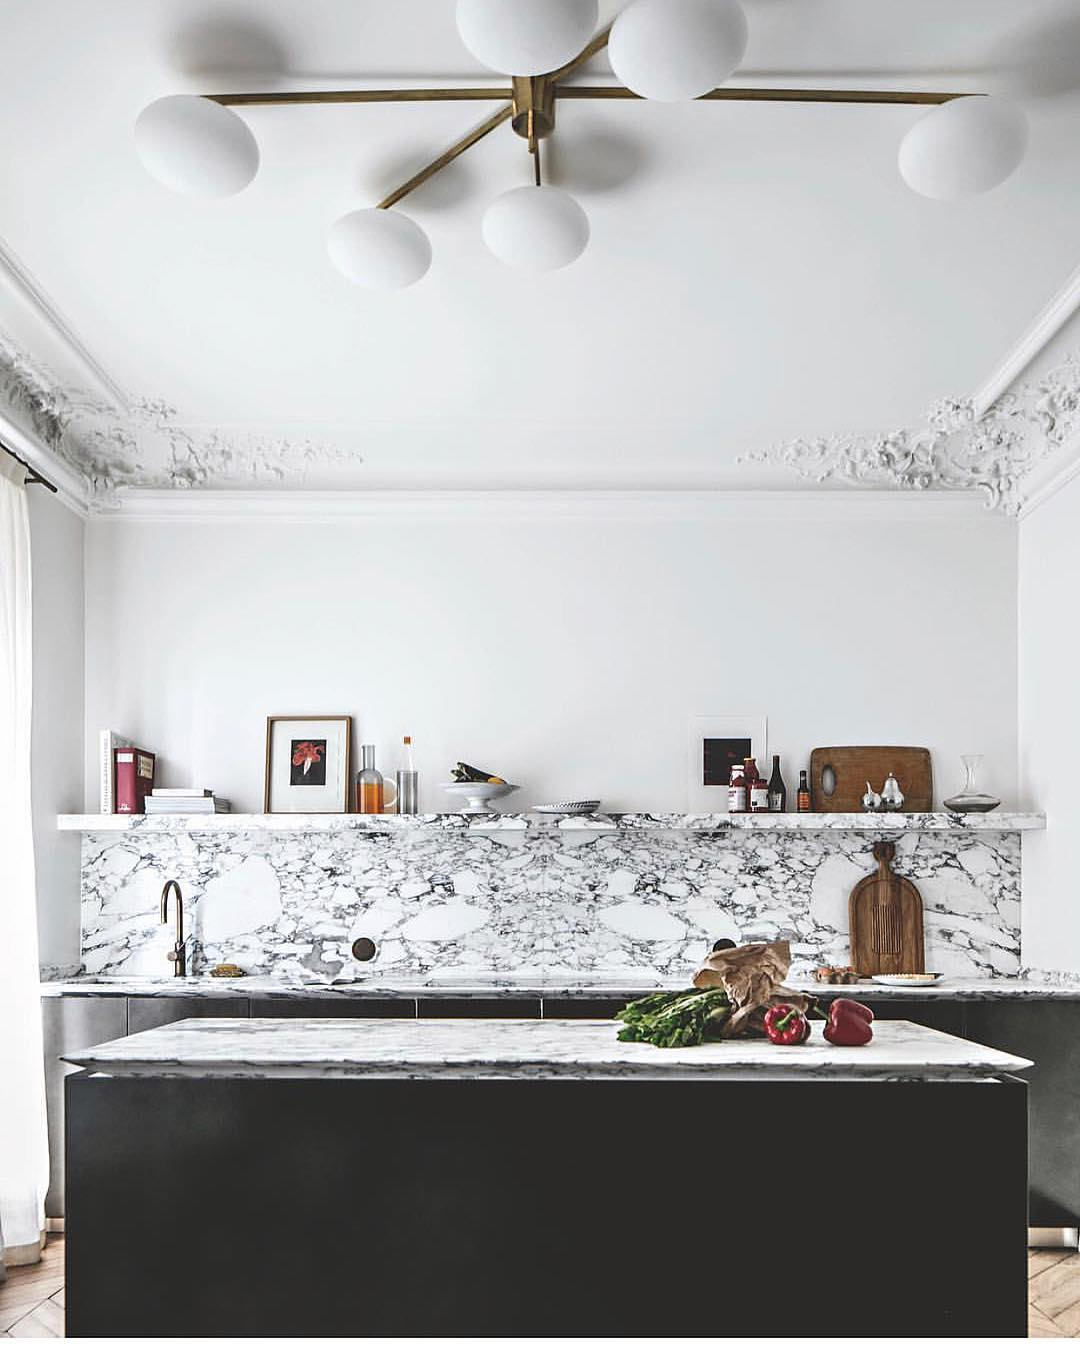 Arabescato Marble Looks Fabulous With Fancy Ceilings, Dark Cabinetry And Light Fixture